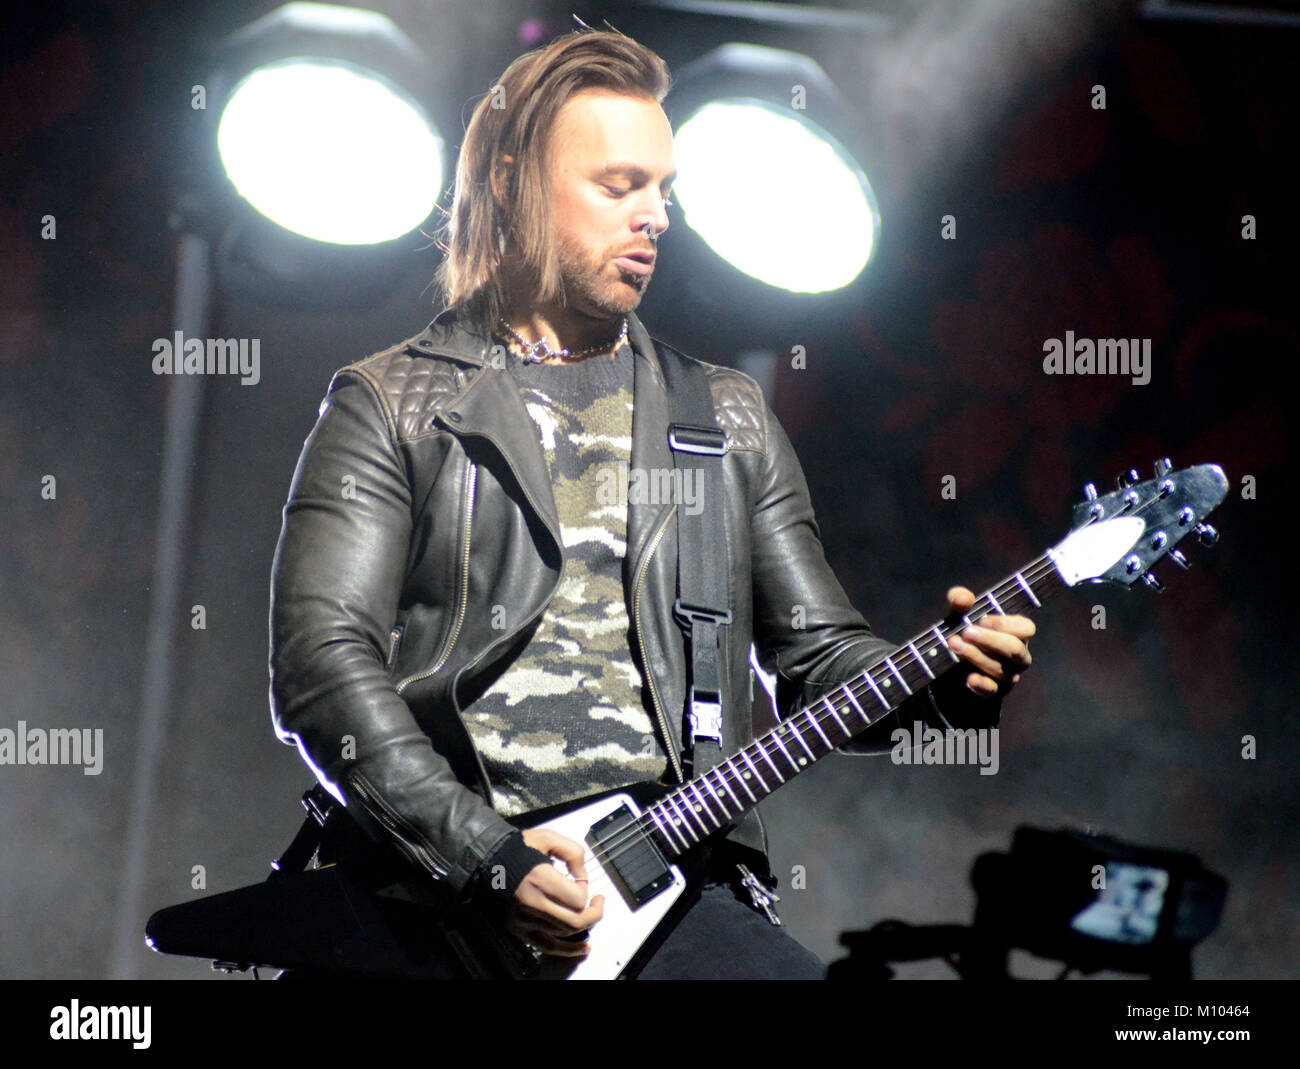 Matthew Tuck Stock Photos Amp Matthew Tuck Stock Images Alamy